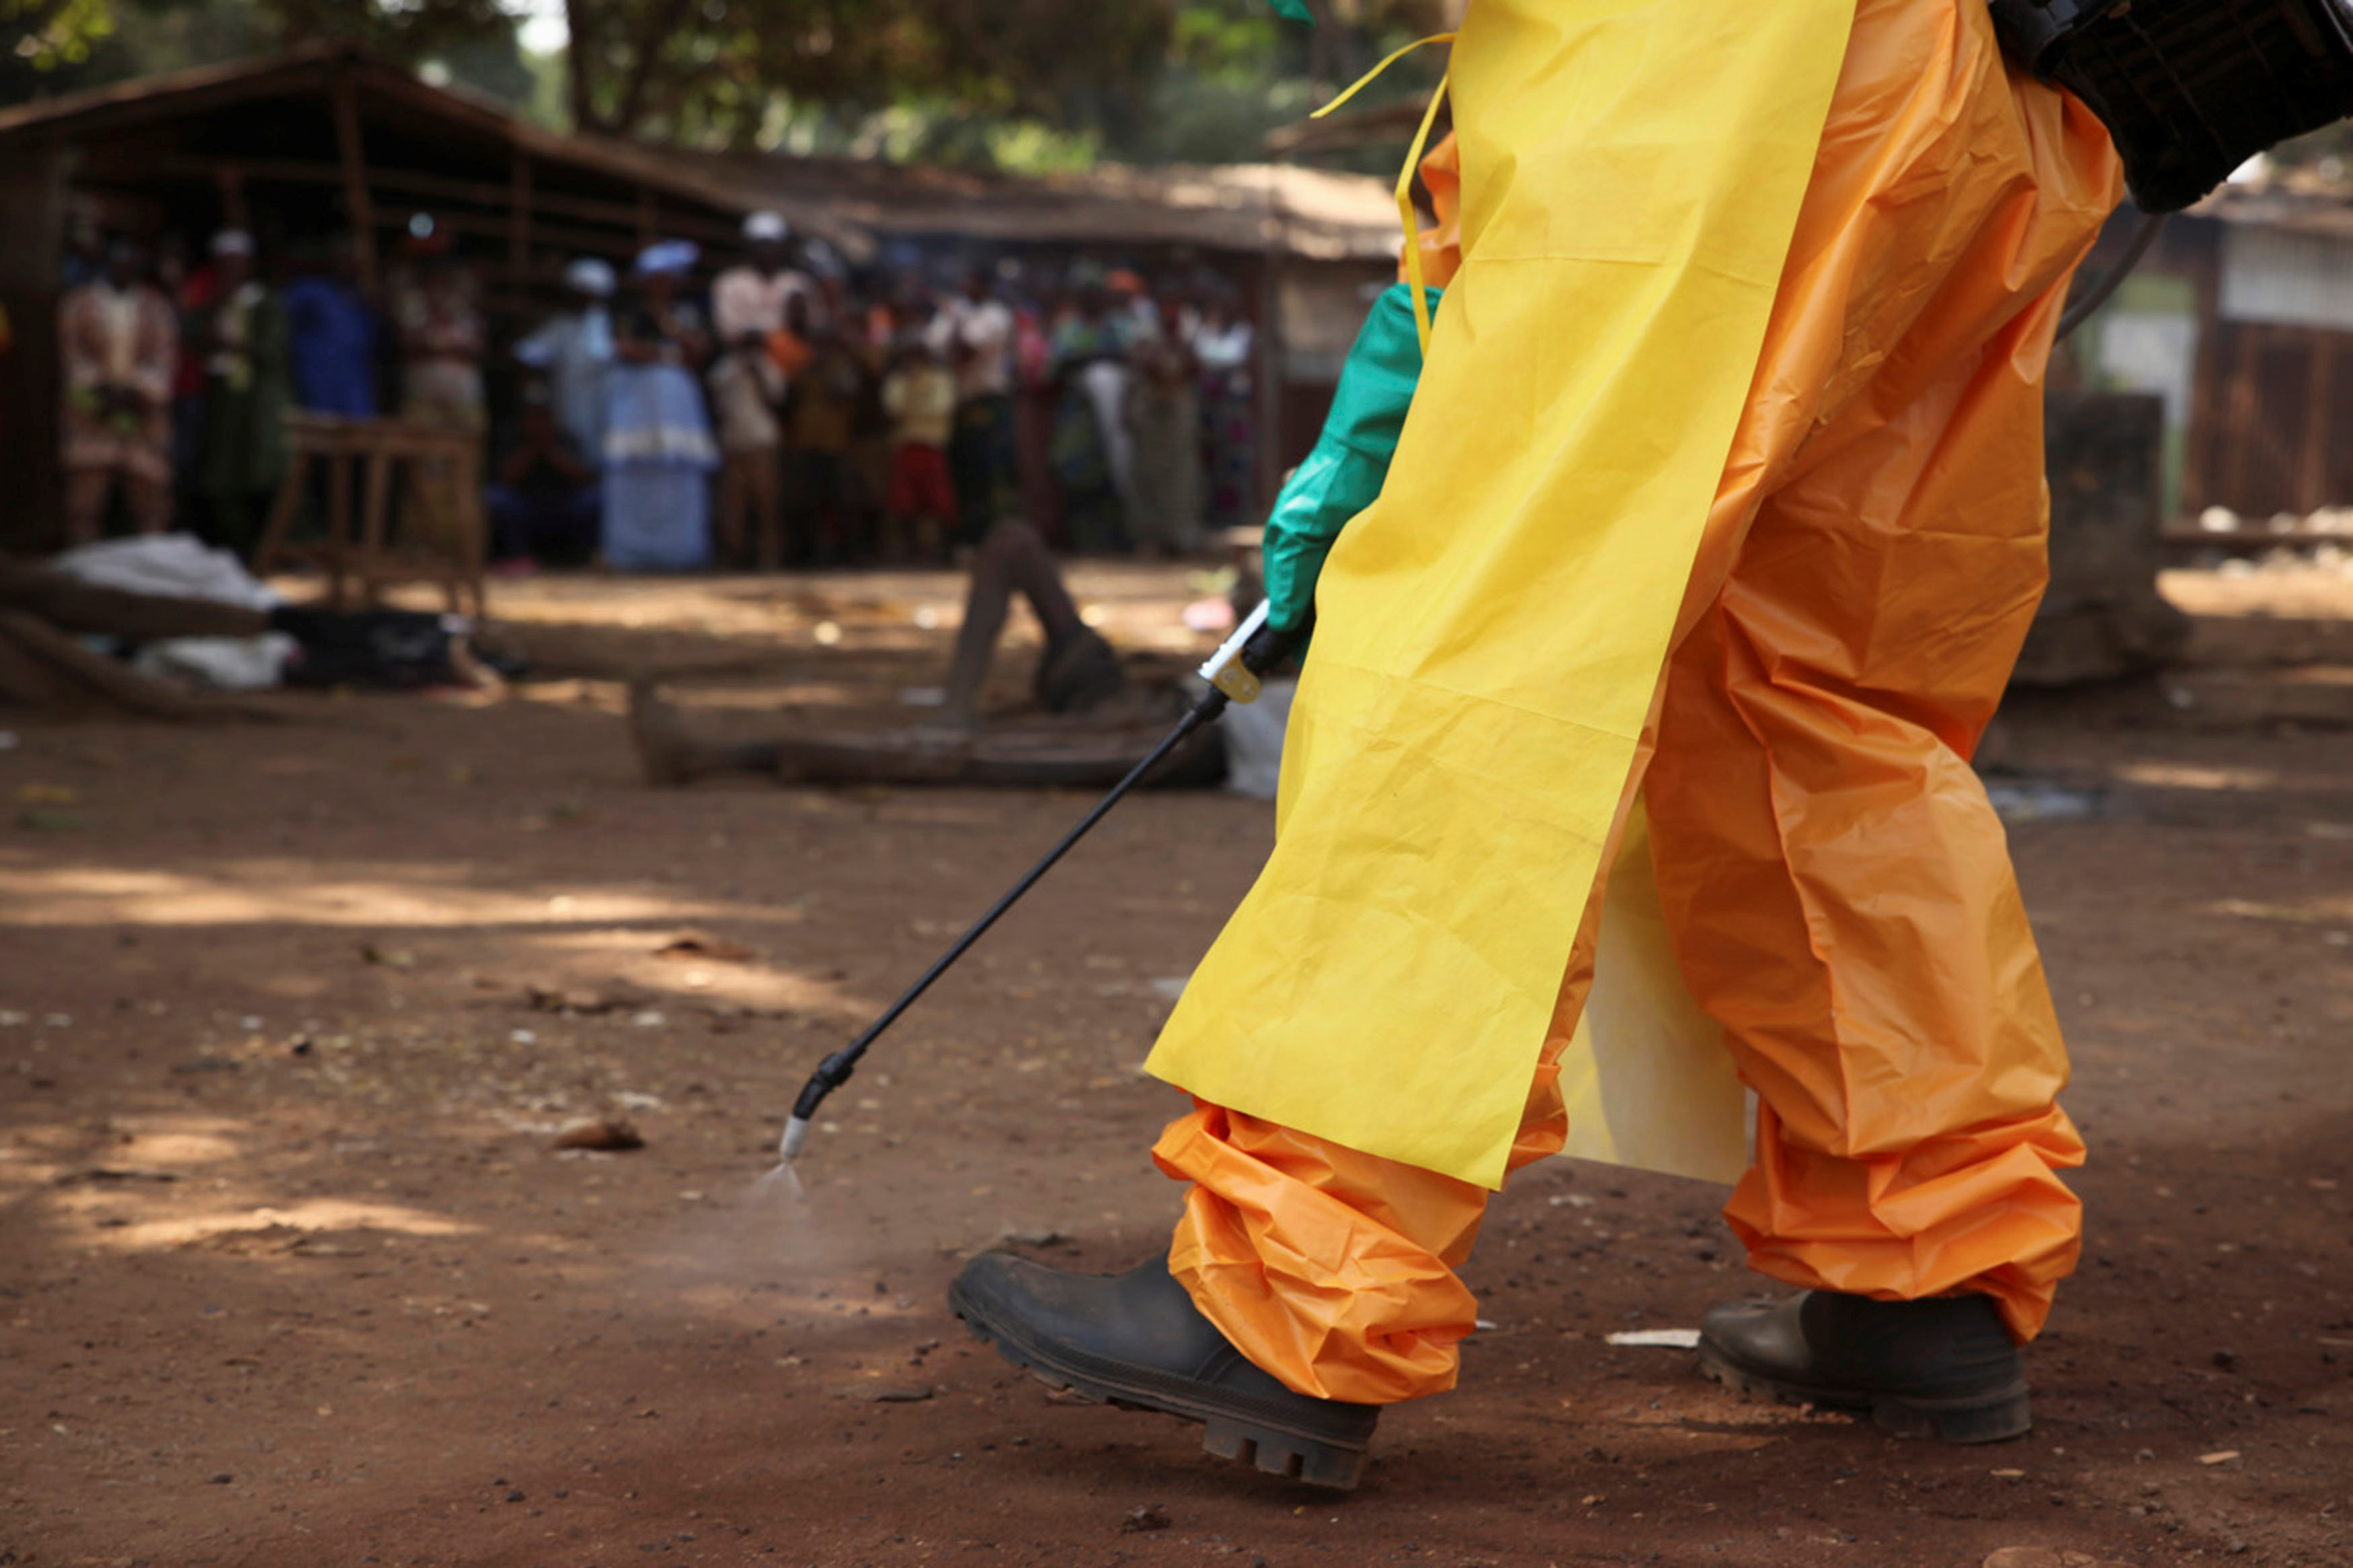 A member of the French Red Cross disinfects the area around a motionless person suspected of carrying the Ebola virus as a crowd gathers in Forecariah, Guinea, January 30, 2015. REUTERS/Misha Hussain/File Photo